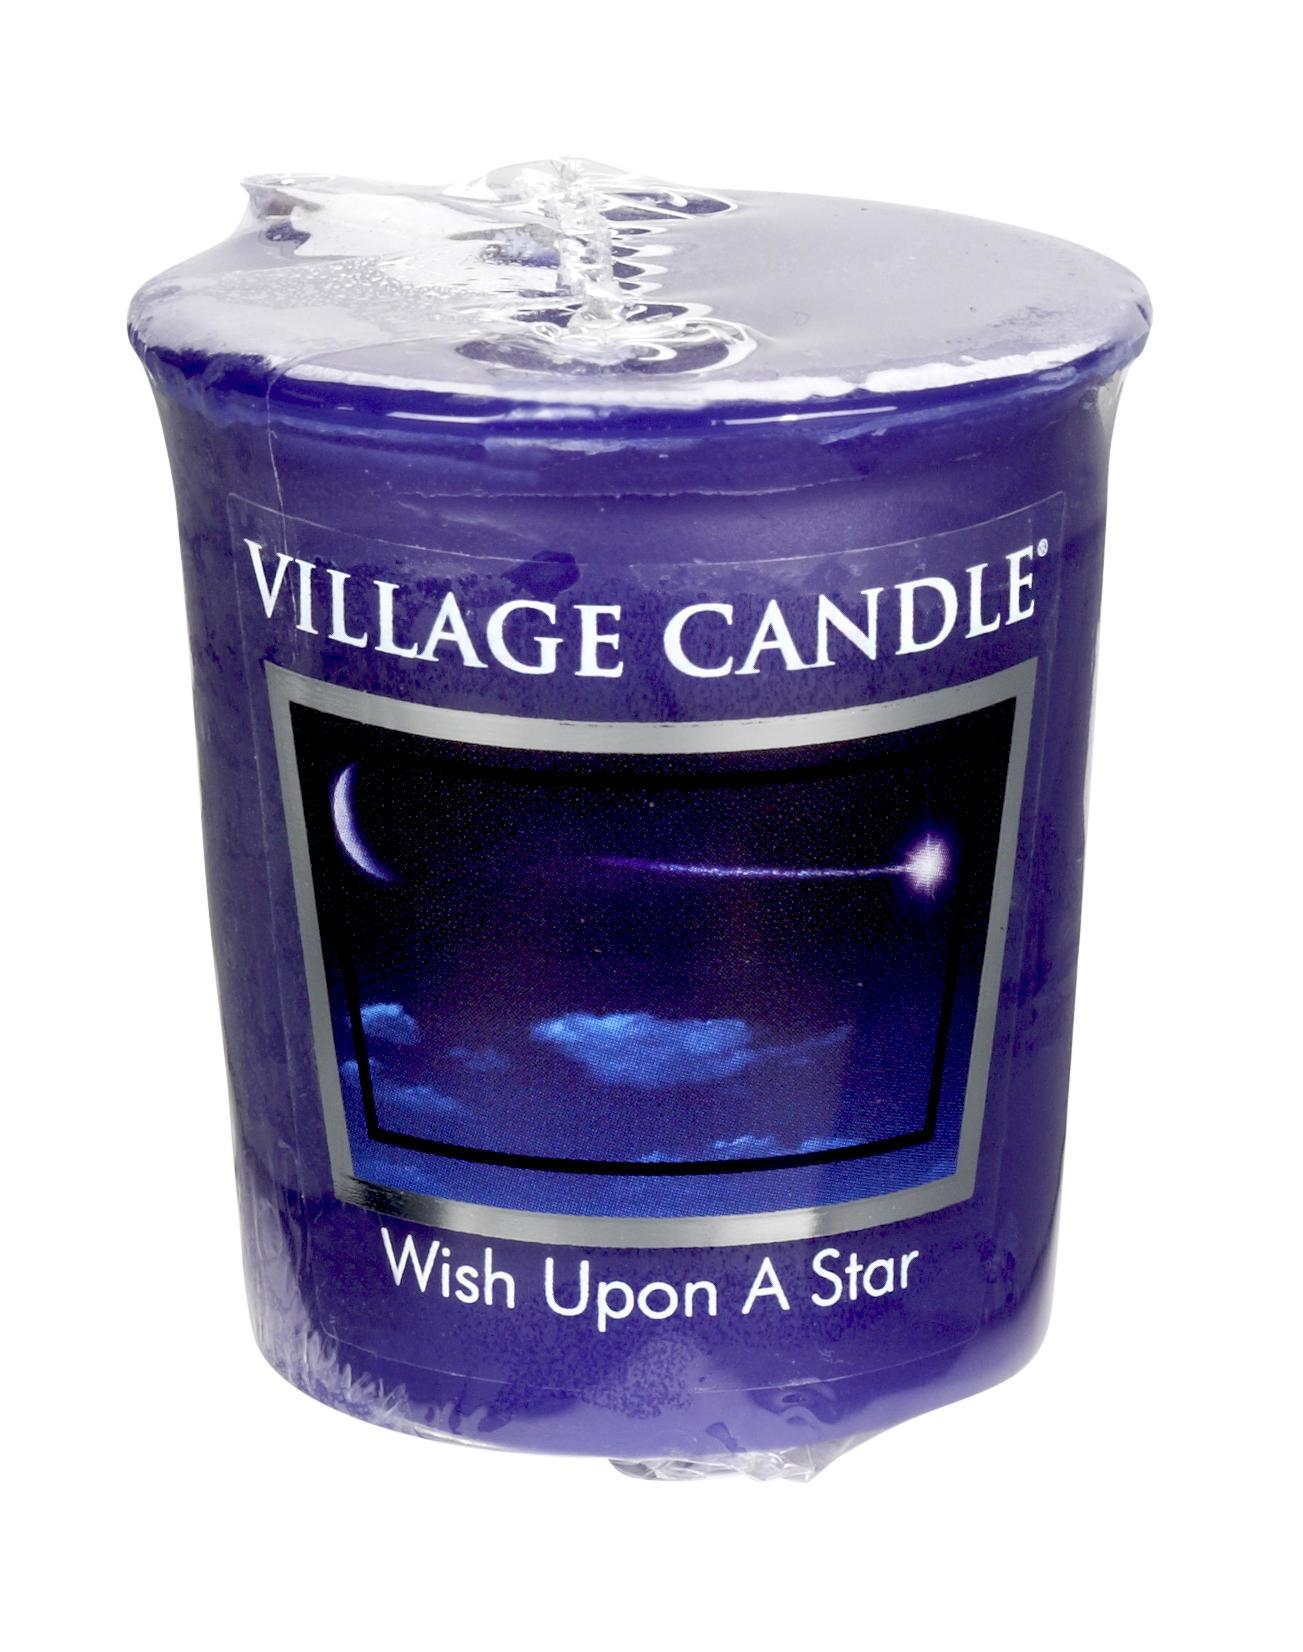 Village Candle Votivní svíčka Village Candle - Wish upon a star